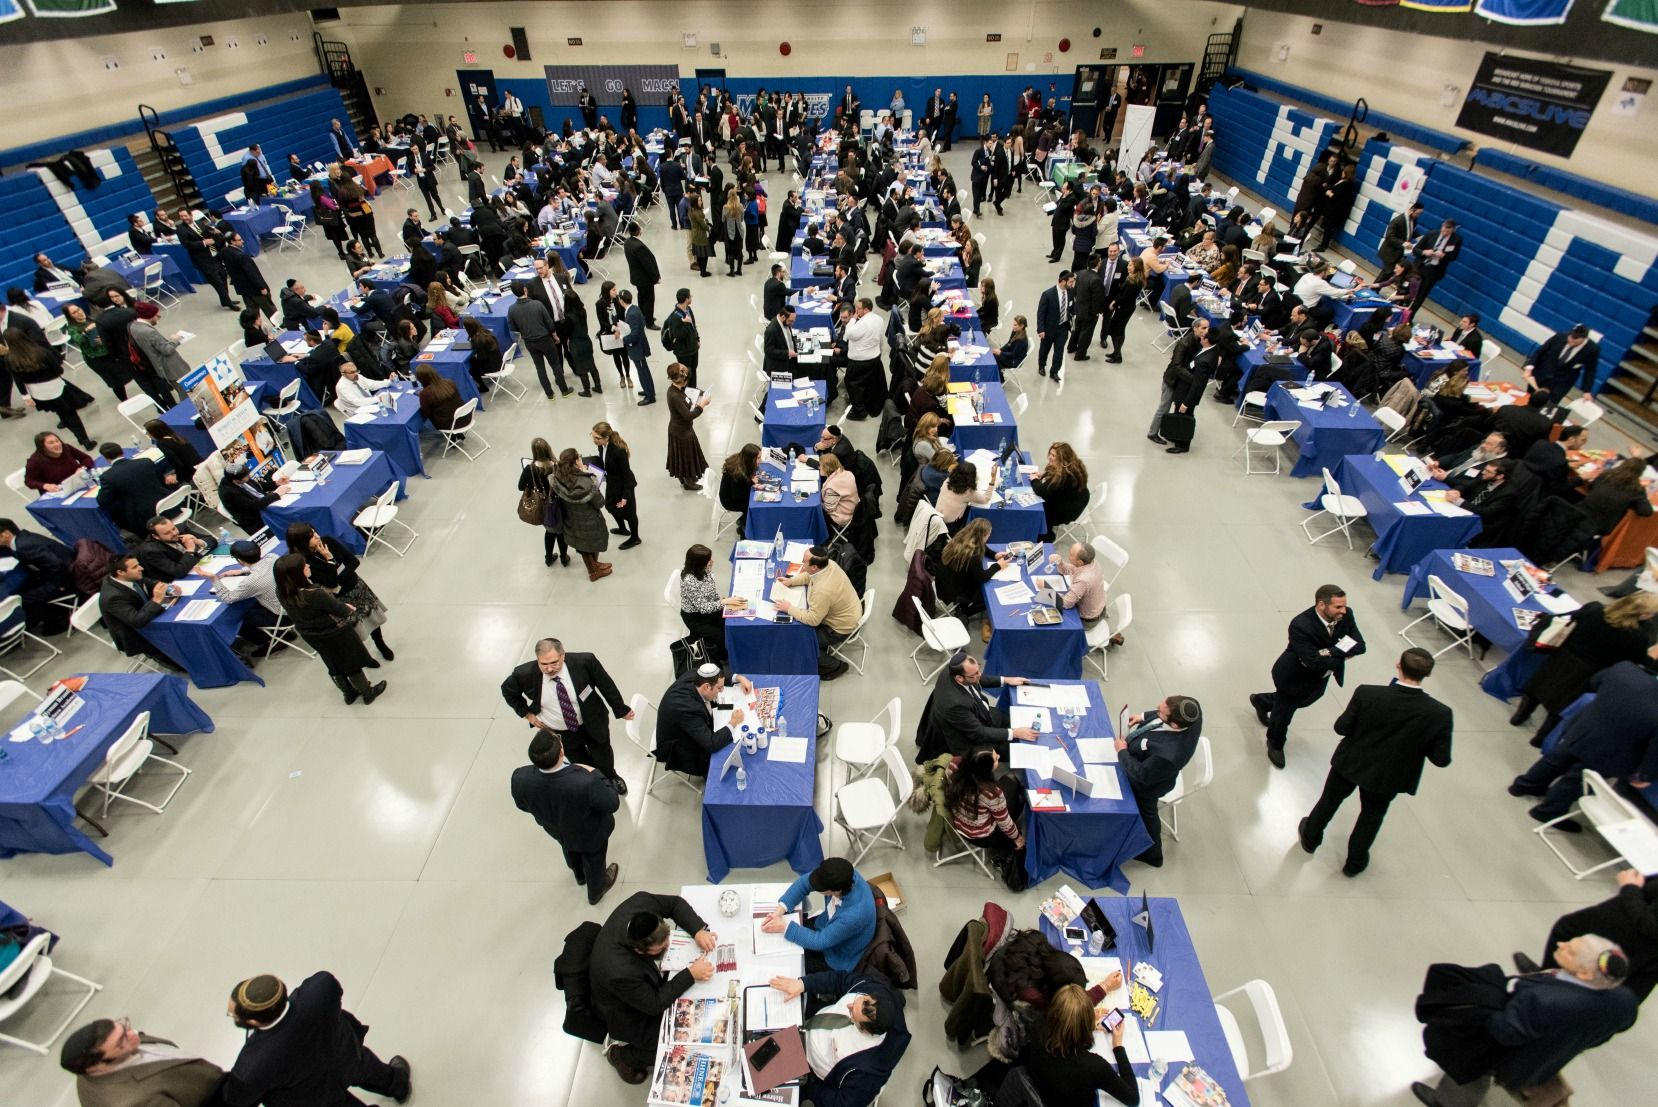 At our job fair you will be able to interview with